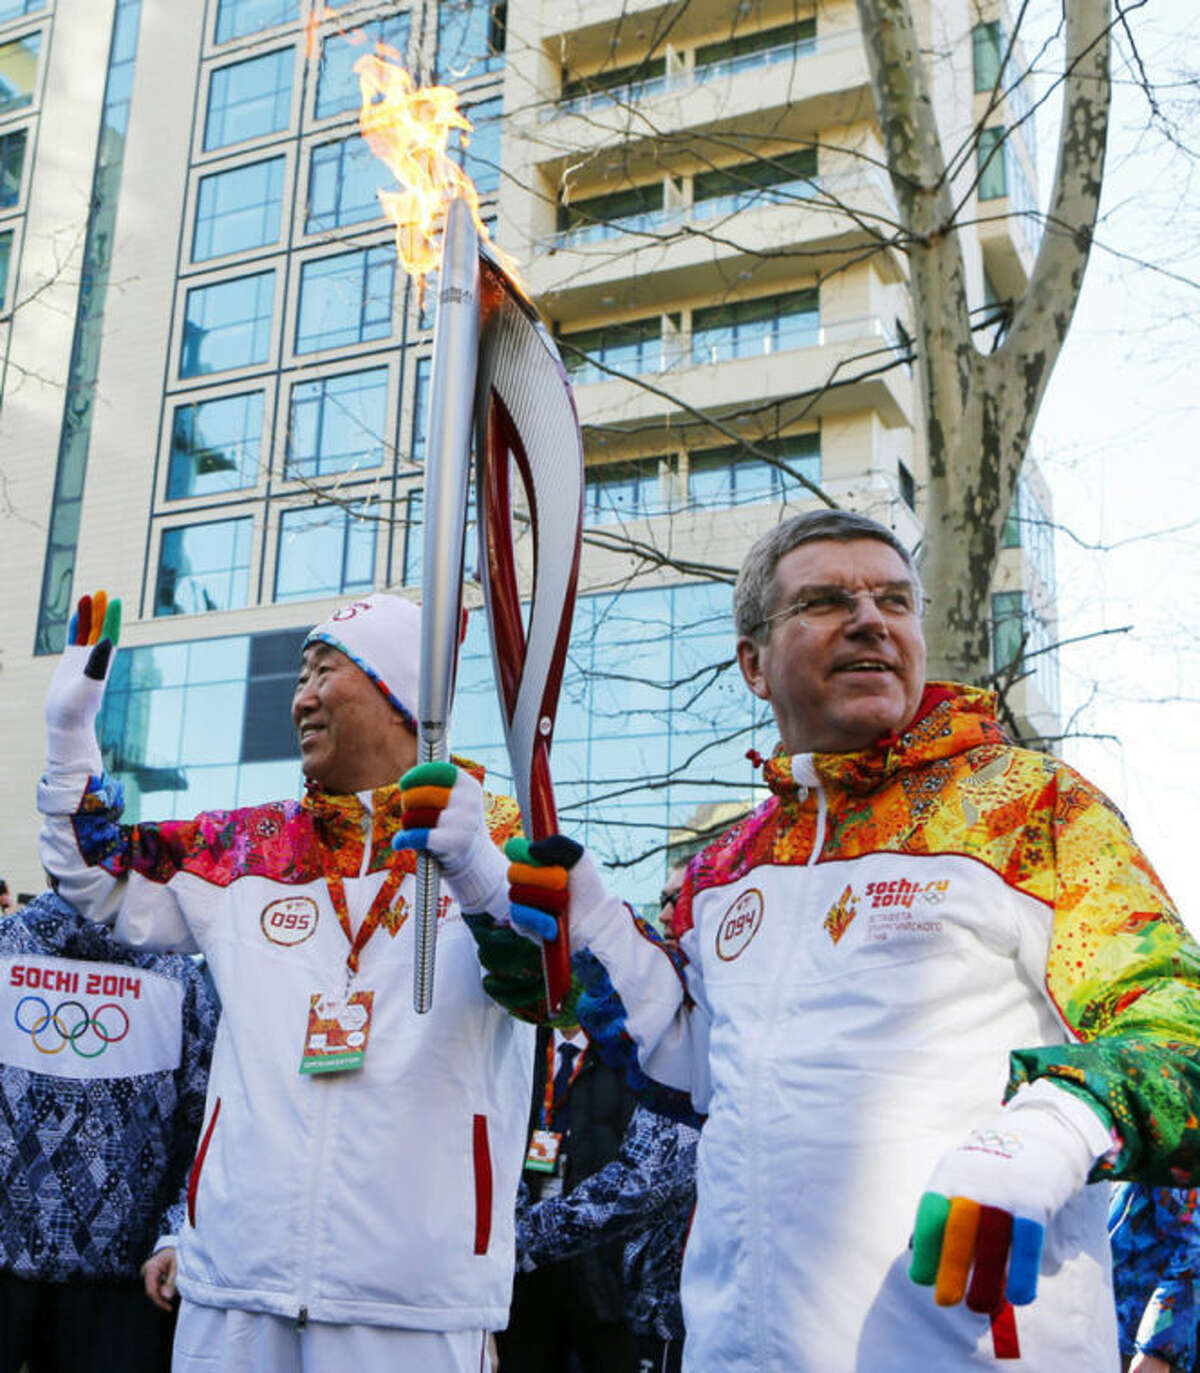 IOC President Thomas Bach, right, hands over the Olympic torch to United Nations Secretary-General Ban Ki-moon as the torch relay arrives in Sochi, ahead of the 2014 Winter Olympics, Thursday, Feb. 6, 2014, in Russia. (AP Photo/Shamil Zhumatov, Pool)